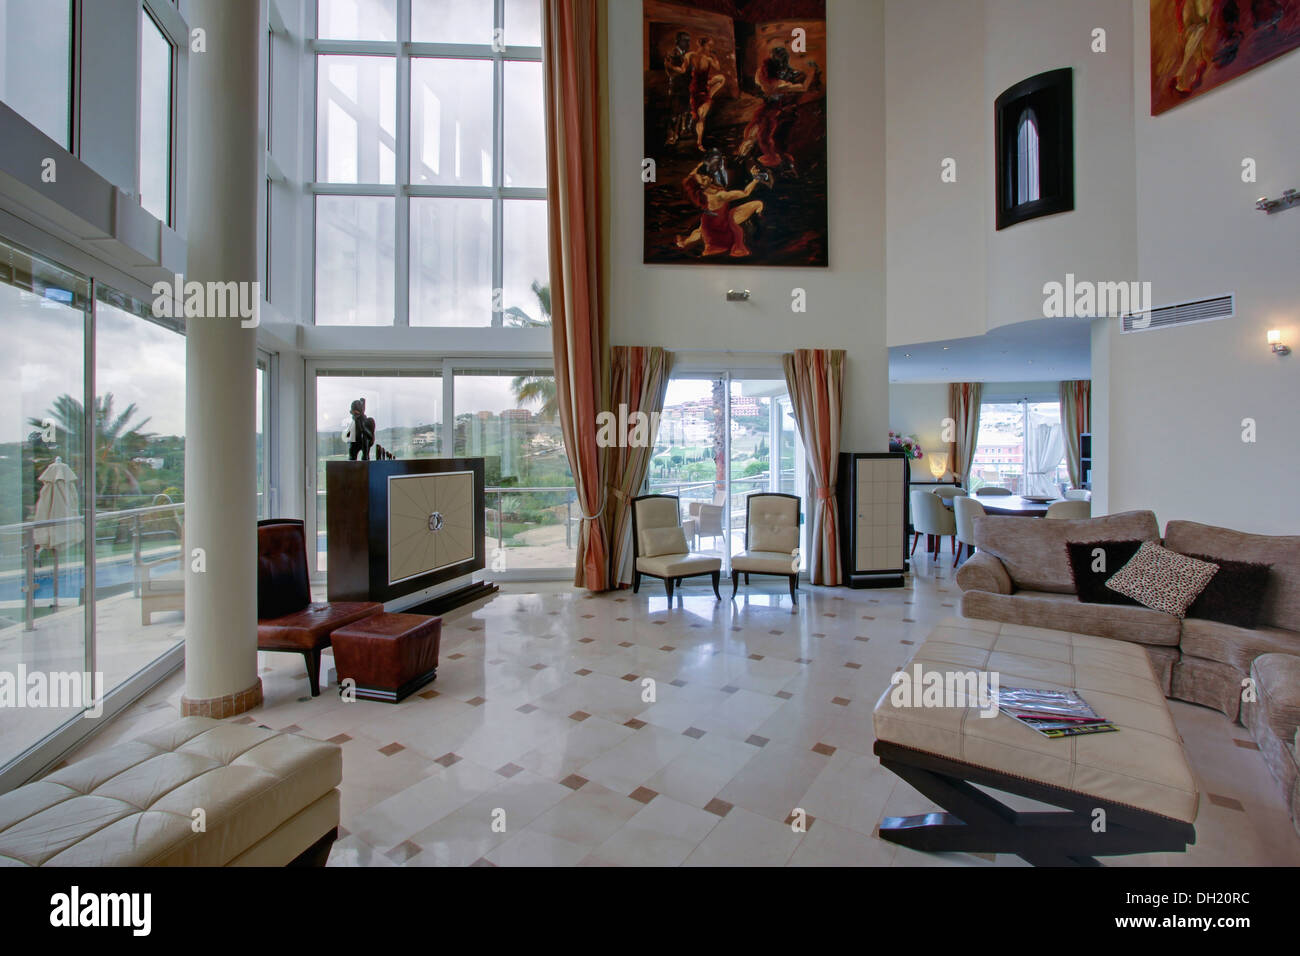 Large painting on wall of double height Spanish living room with